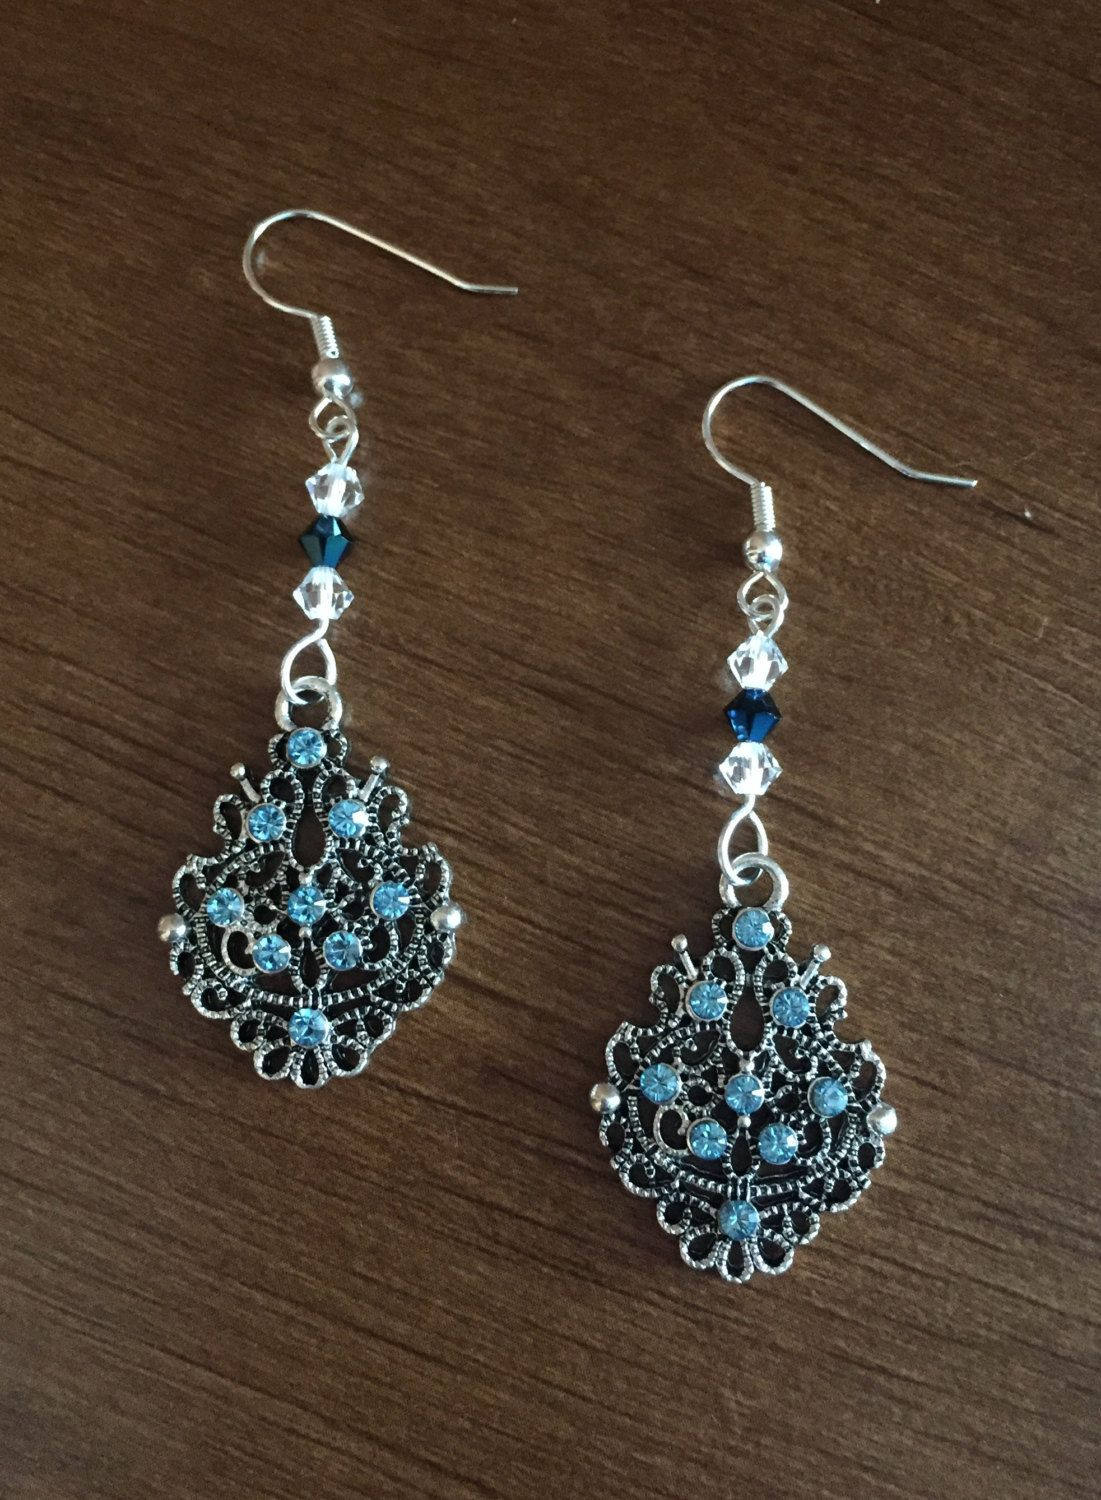 Chandelier silver earrings with blue and crystal beads swarovski chandelier silver earrings with blue and crystal beads swarovski elements chandelier dangle earrings silver aloadofball Image collections